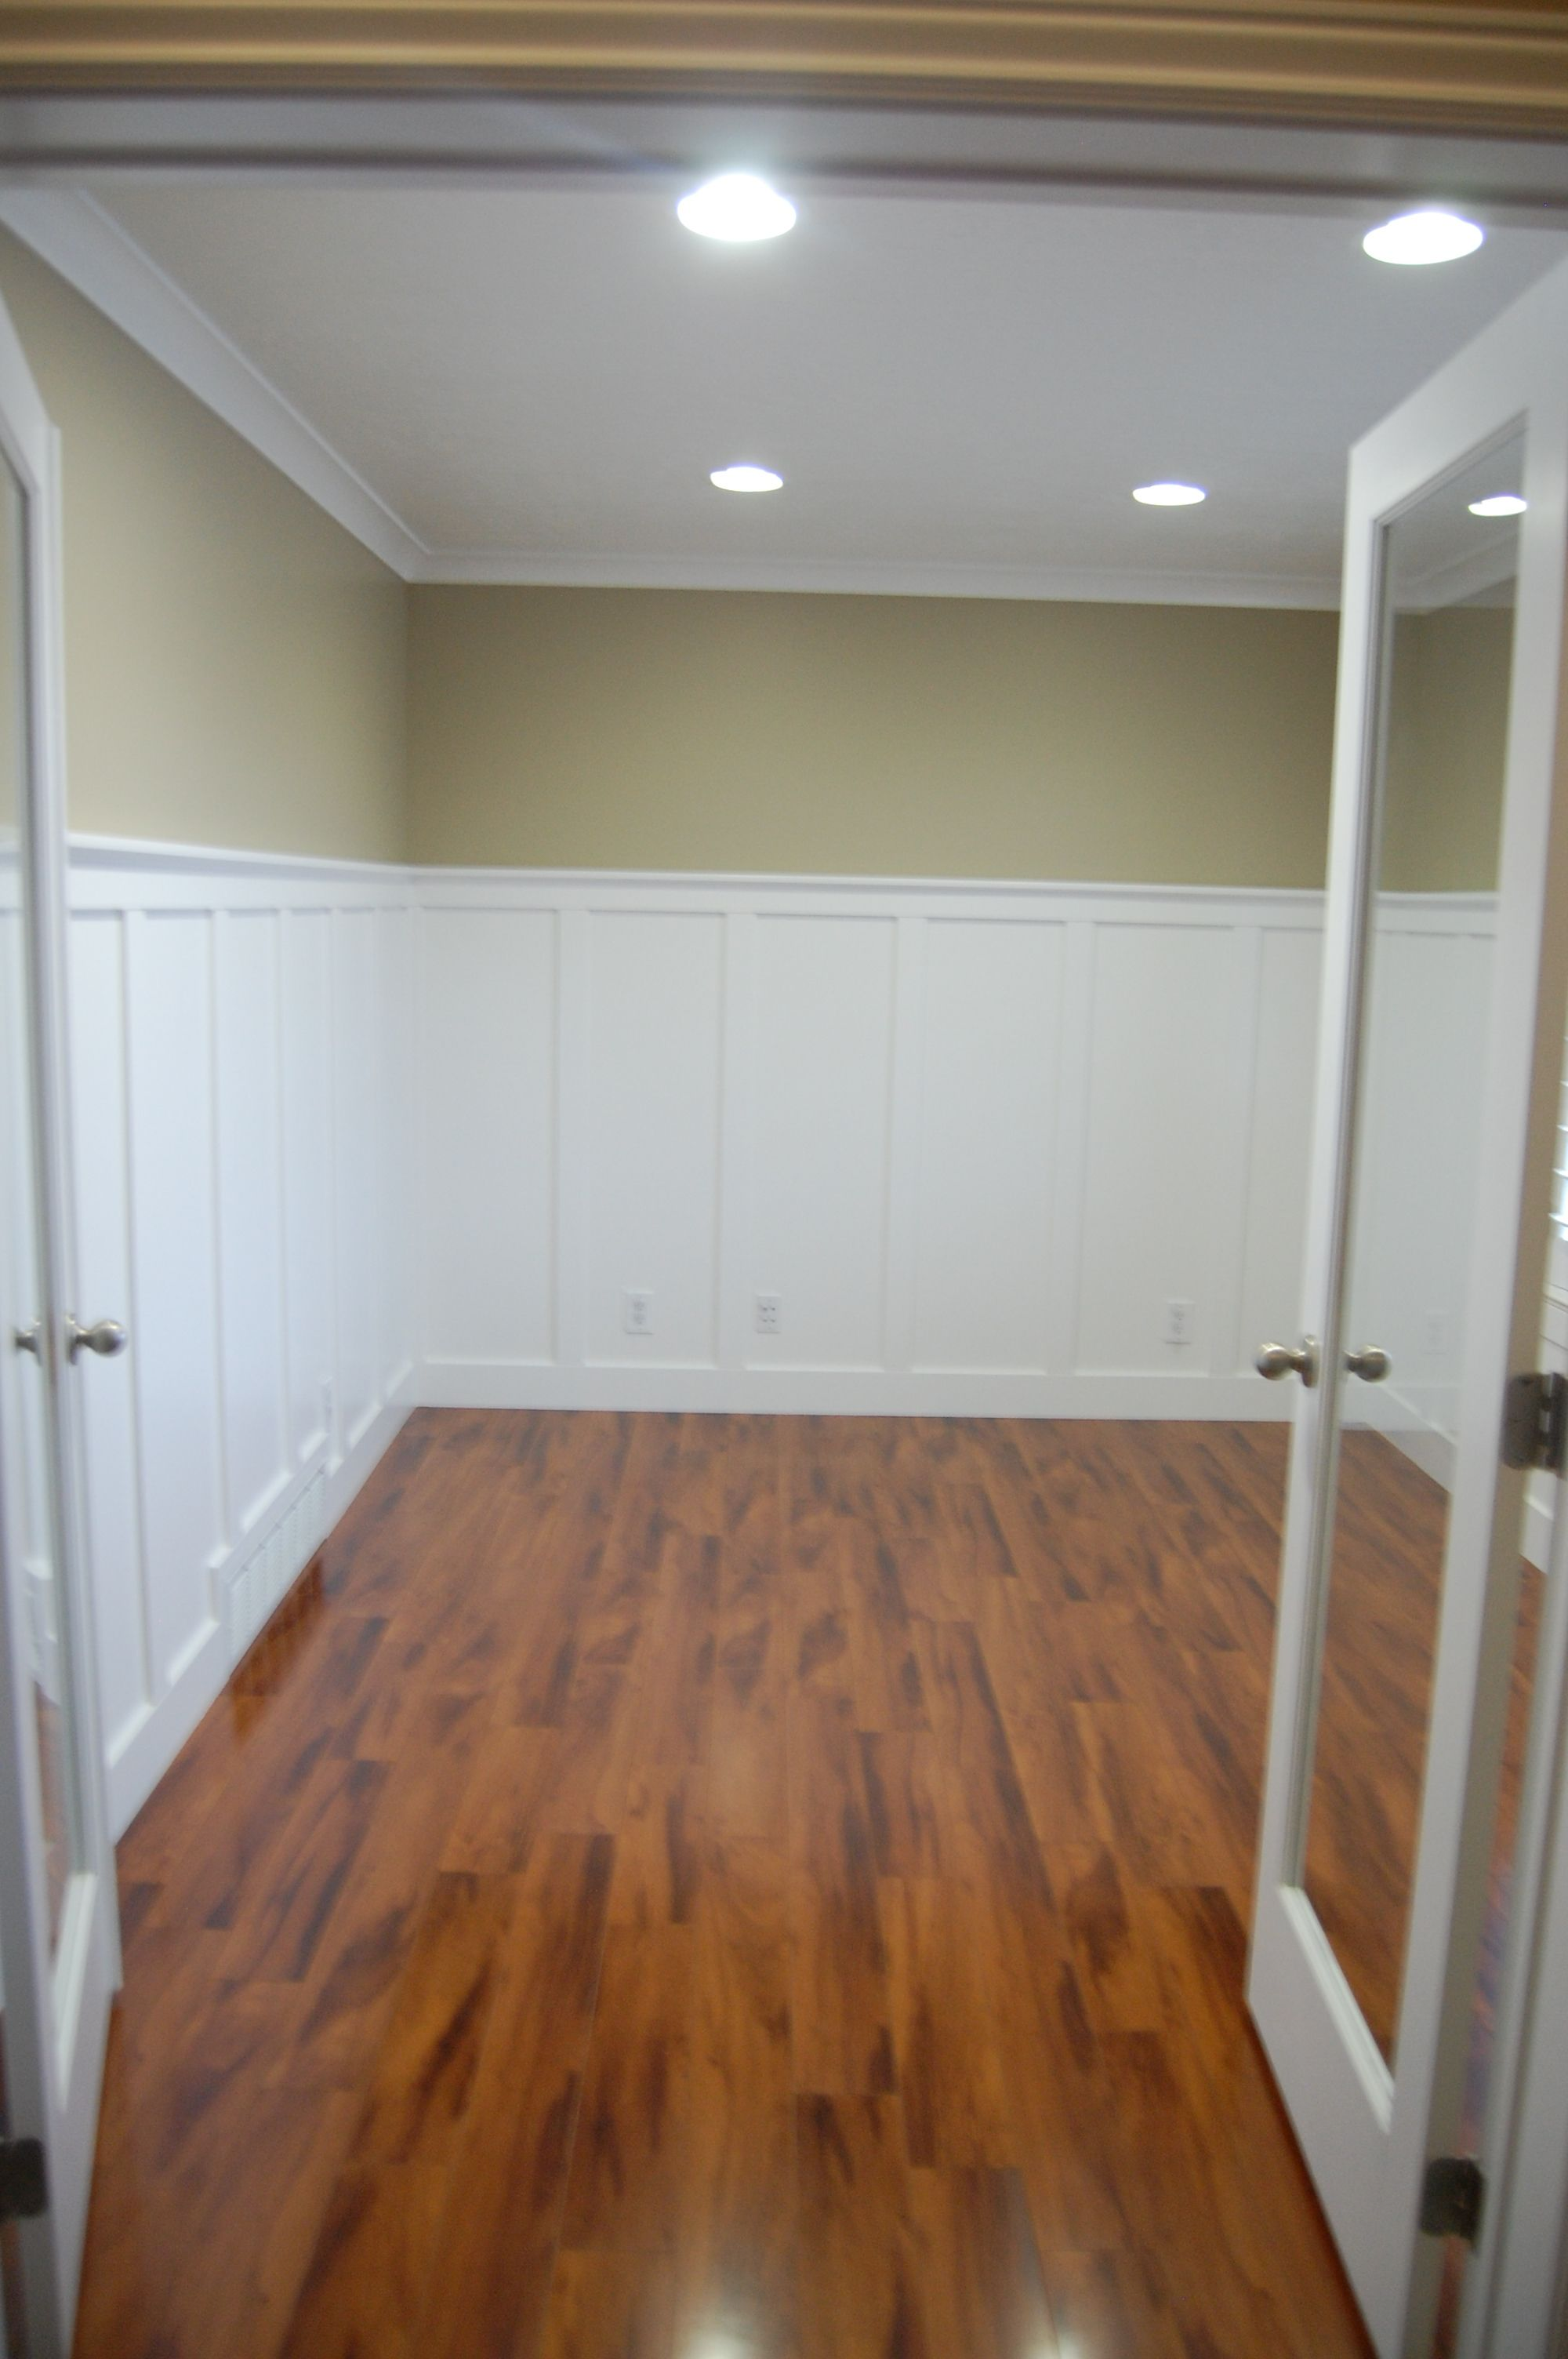 New Craftsman Wainscoting In My Dining Room Wainscoting Styles White Wainscoting Diy Wainscoting